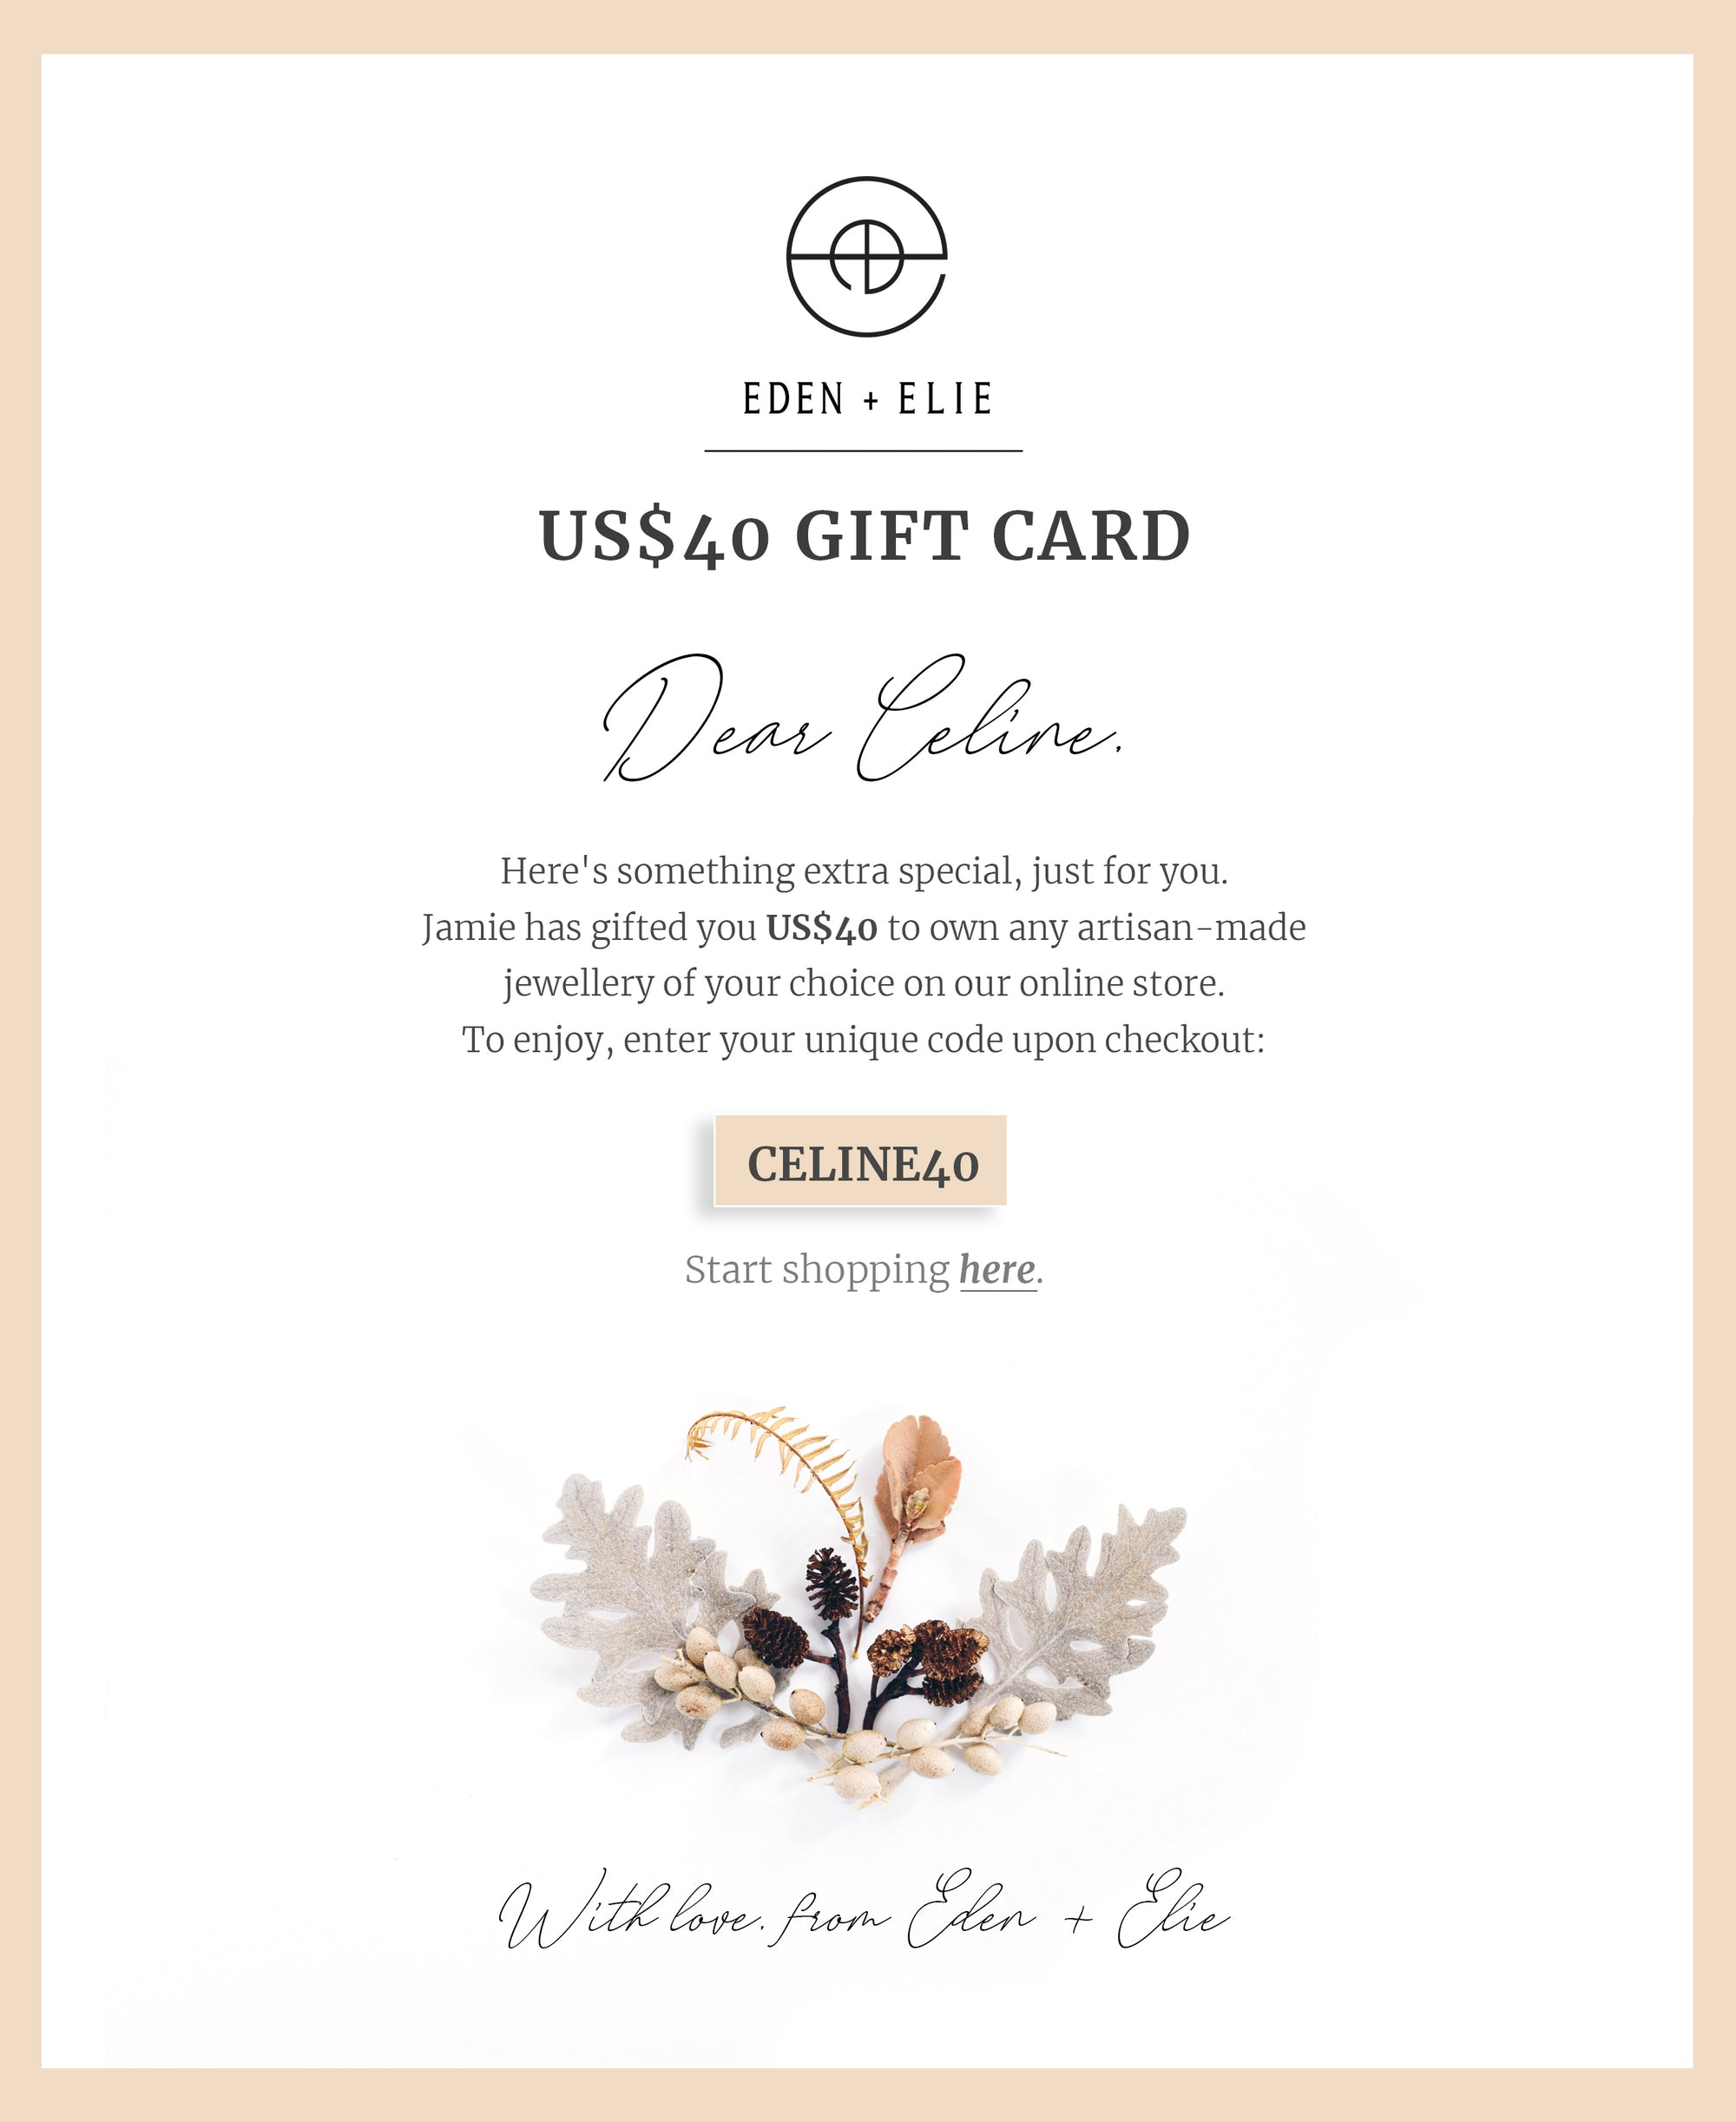 EDEN + ELIE Personalized E-Gift Card - $40